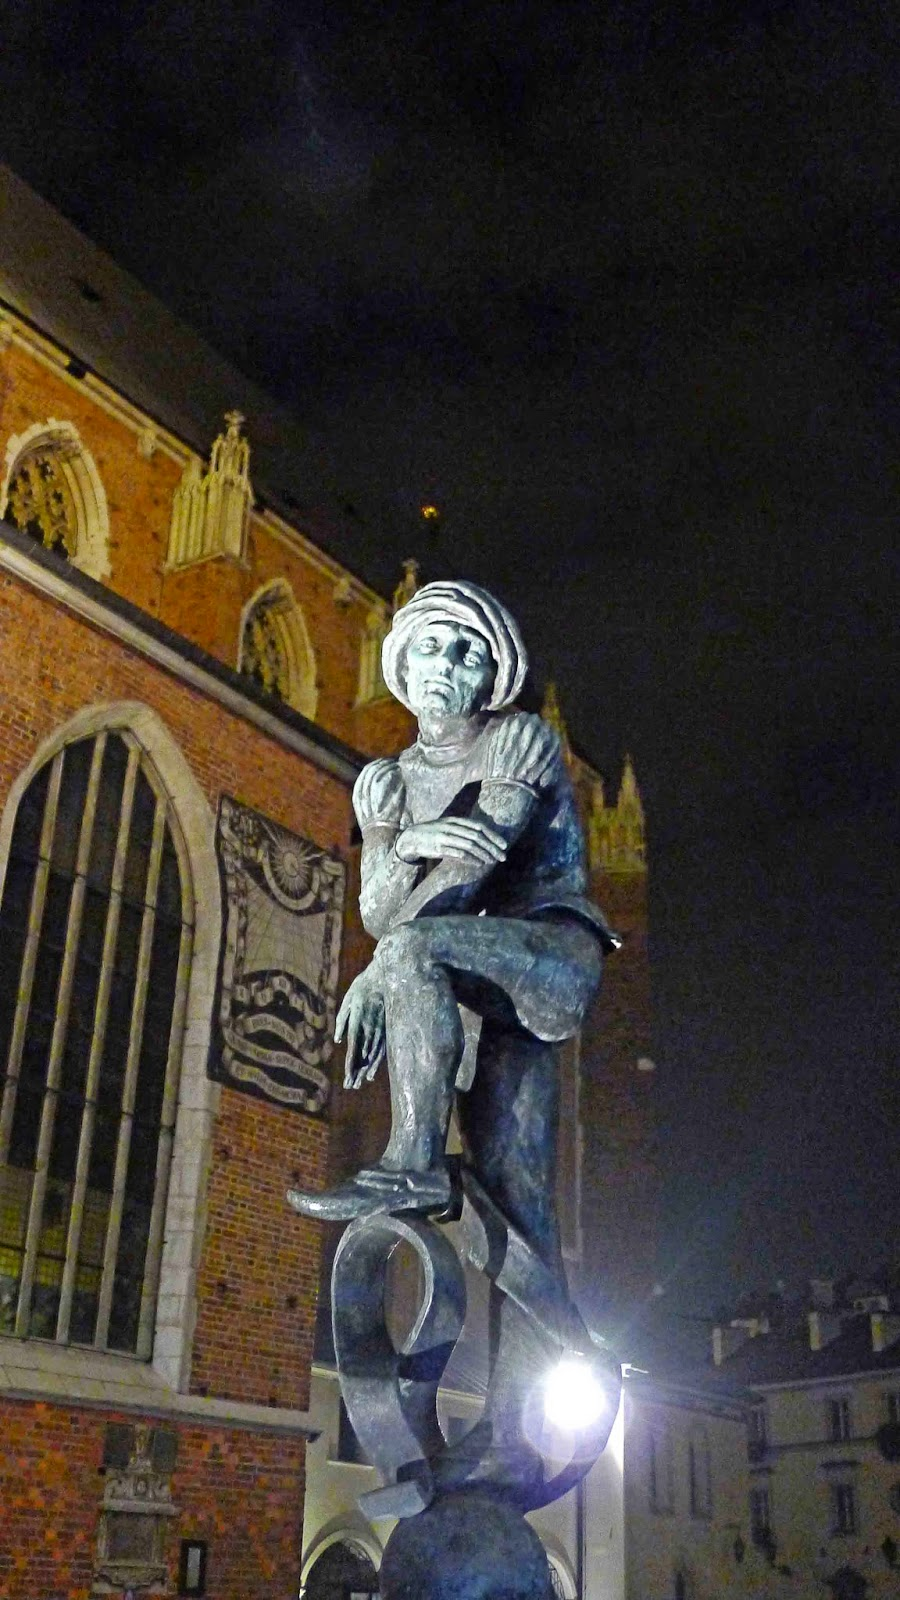 Statue Outside St. Mary's Basilica